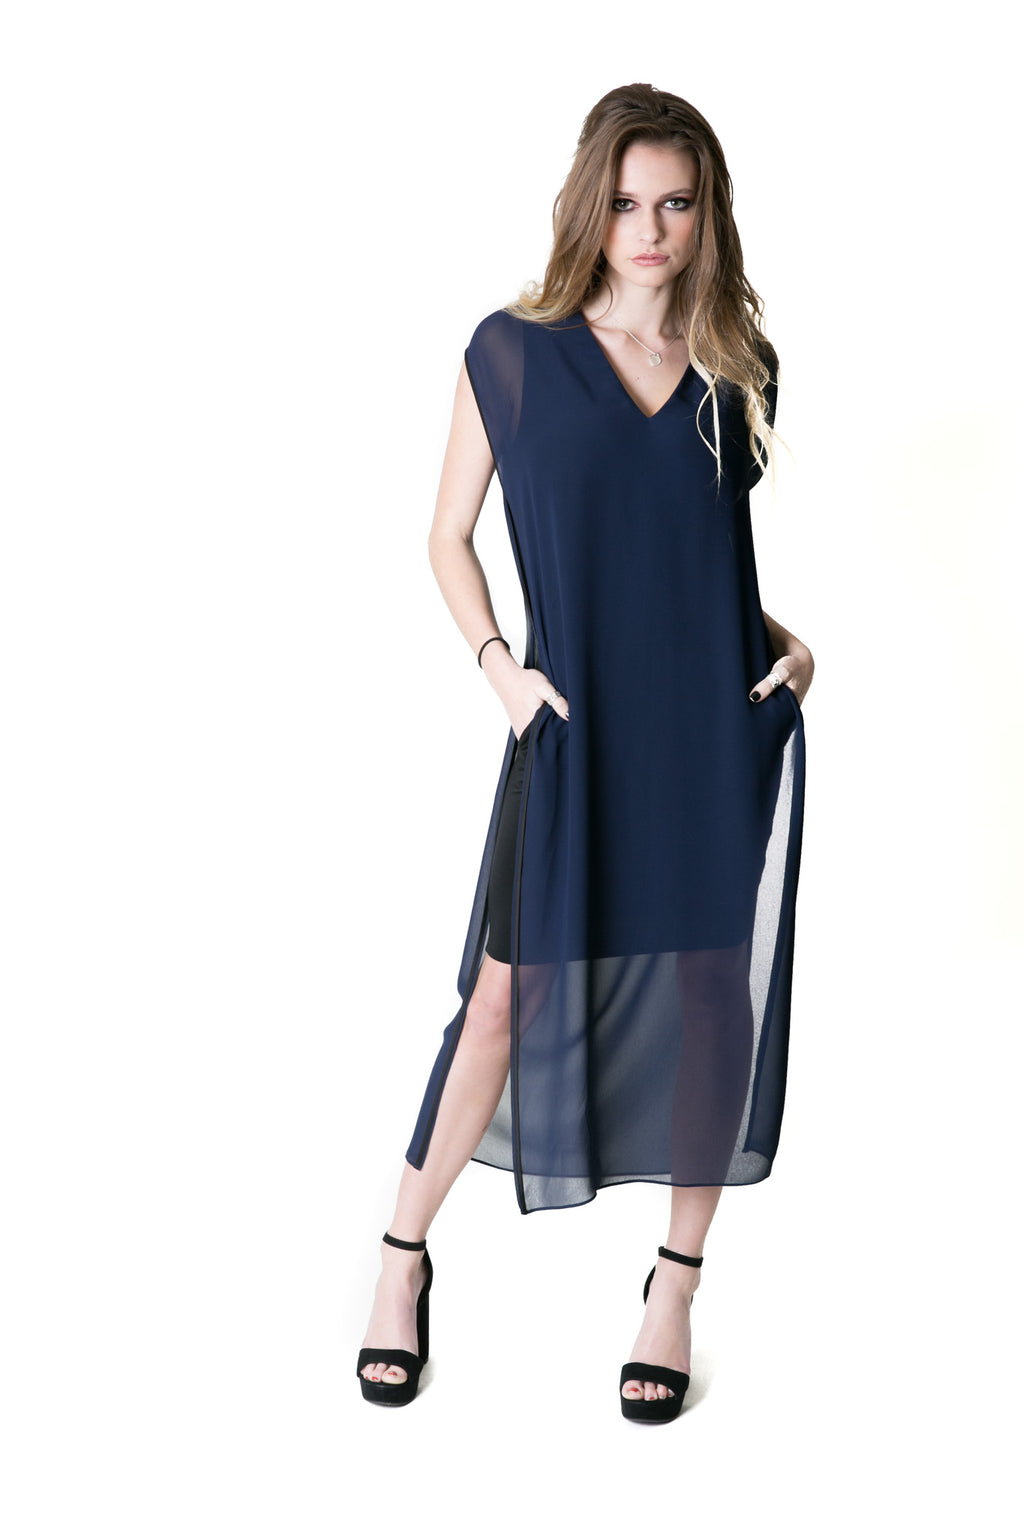 The Lorenza Dress